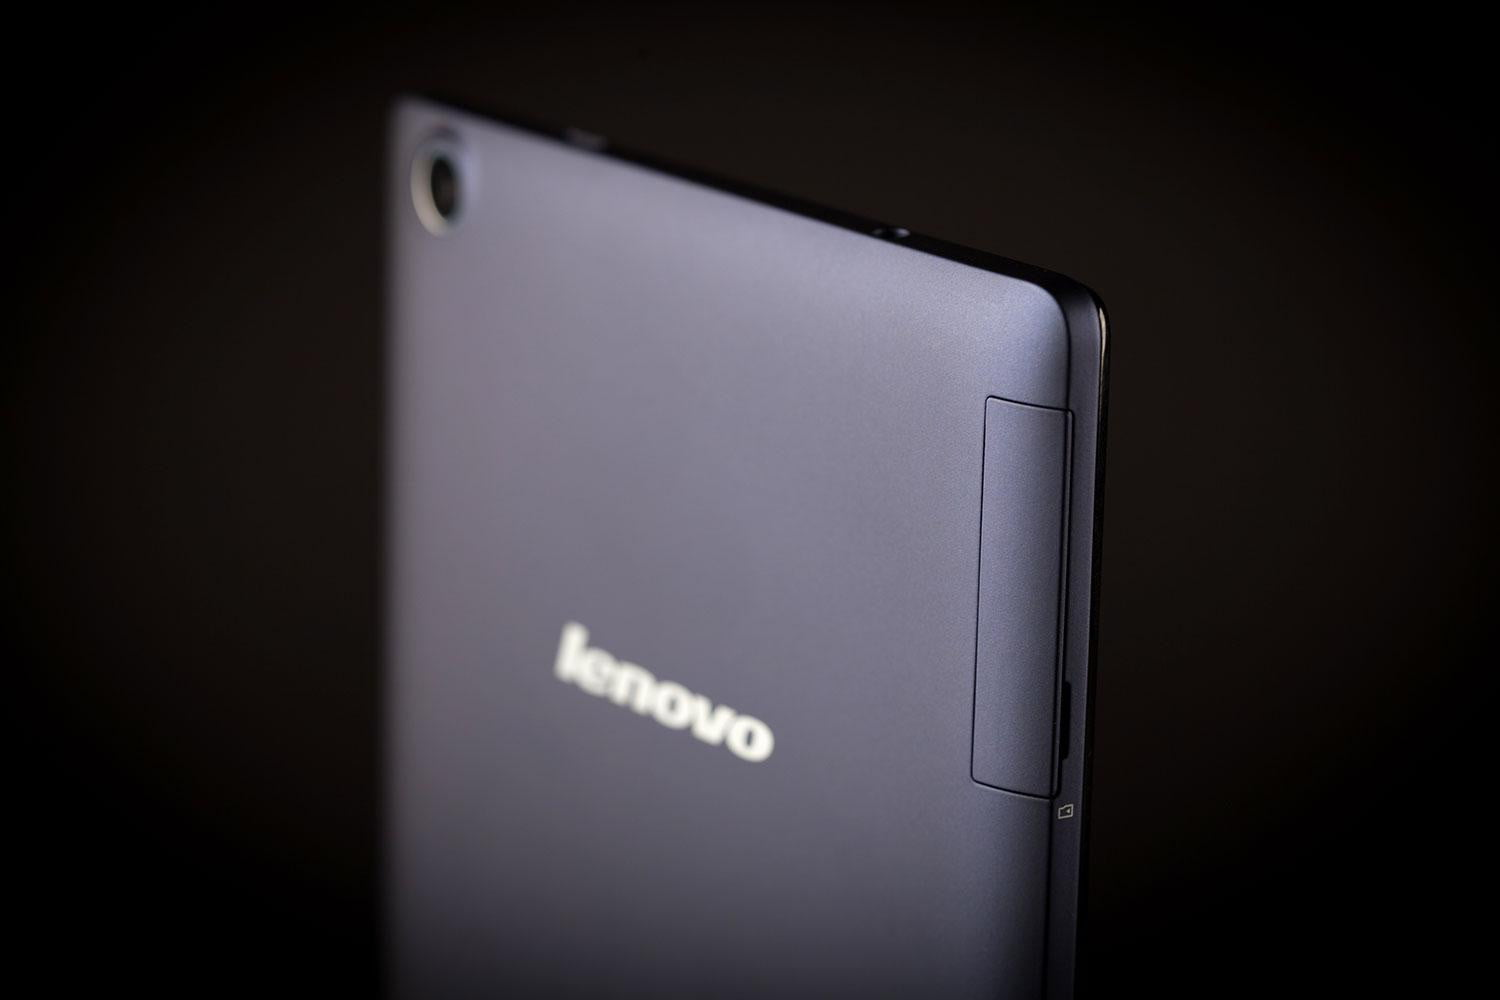 Lenovo Tab 2 A8 Review | A Solid $130 Android Tablet